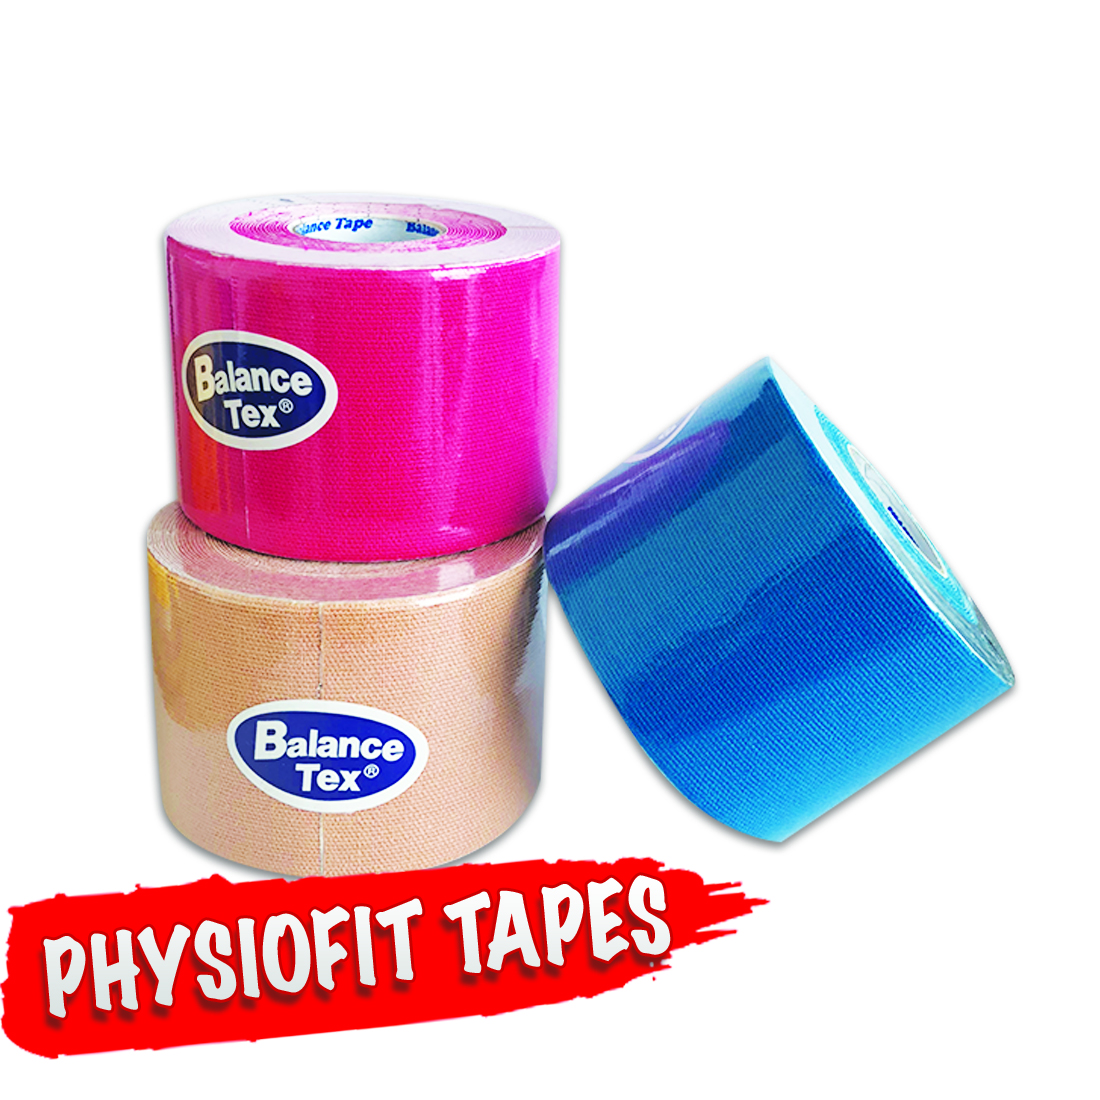 TAPE - Physiofit Tapes